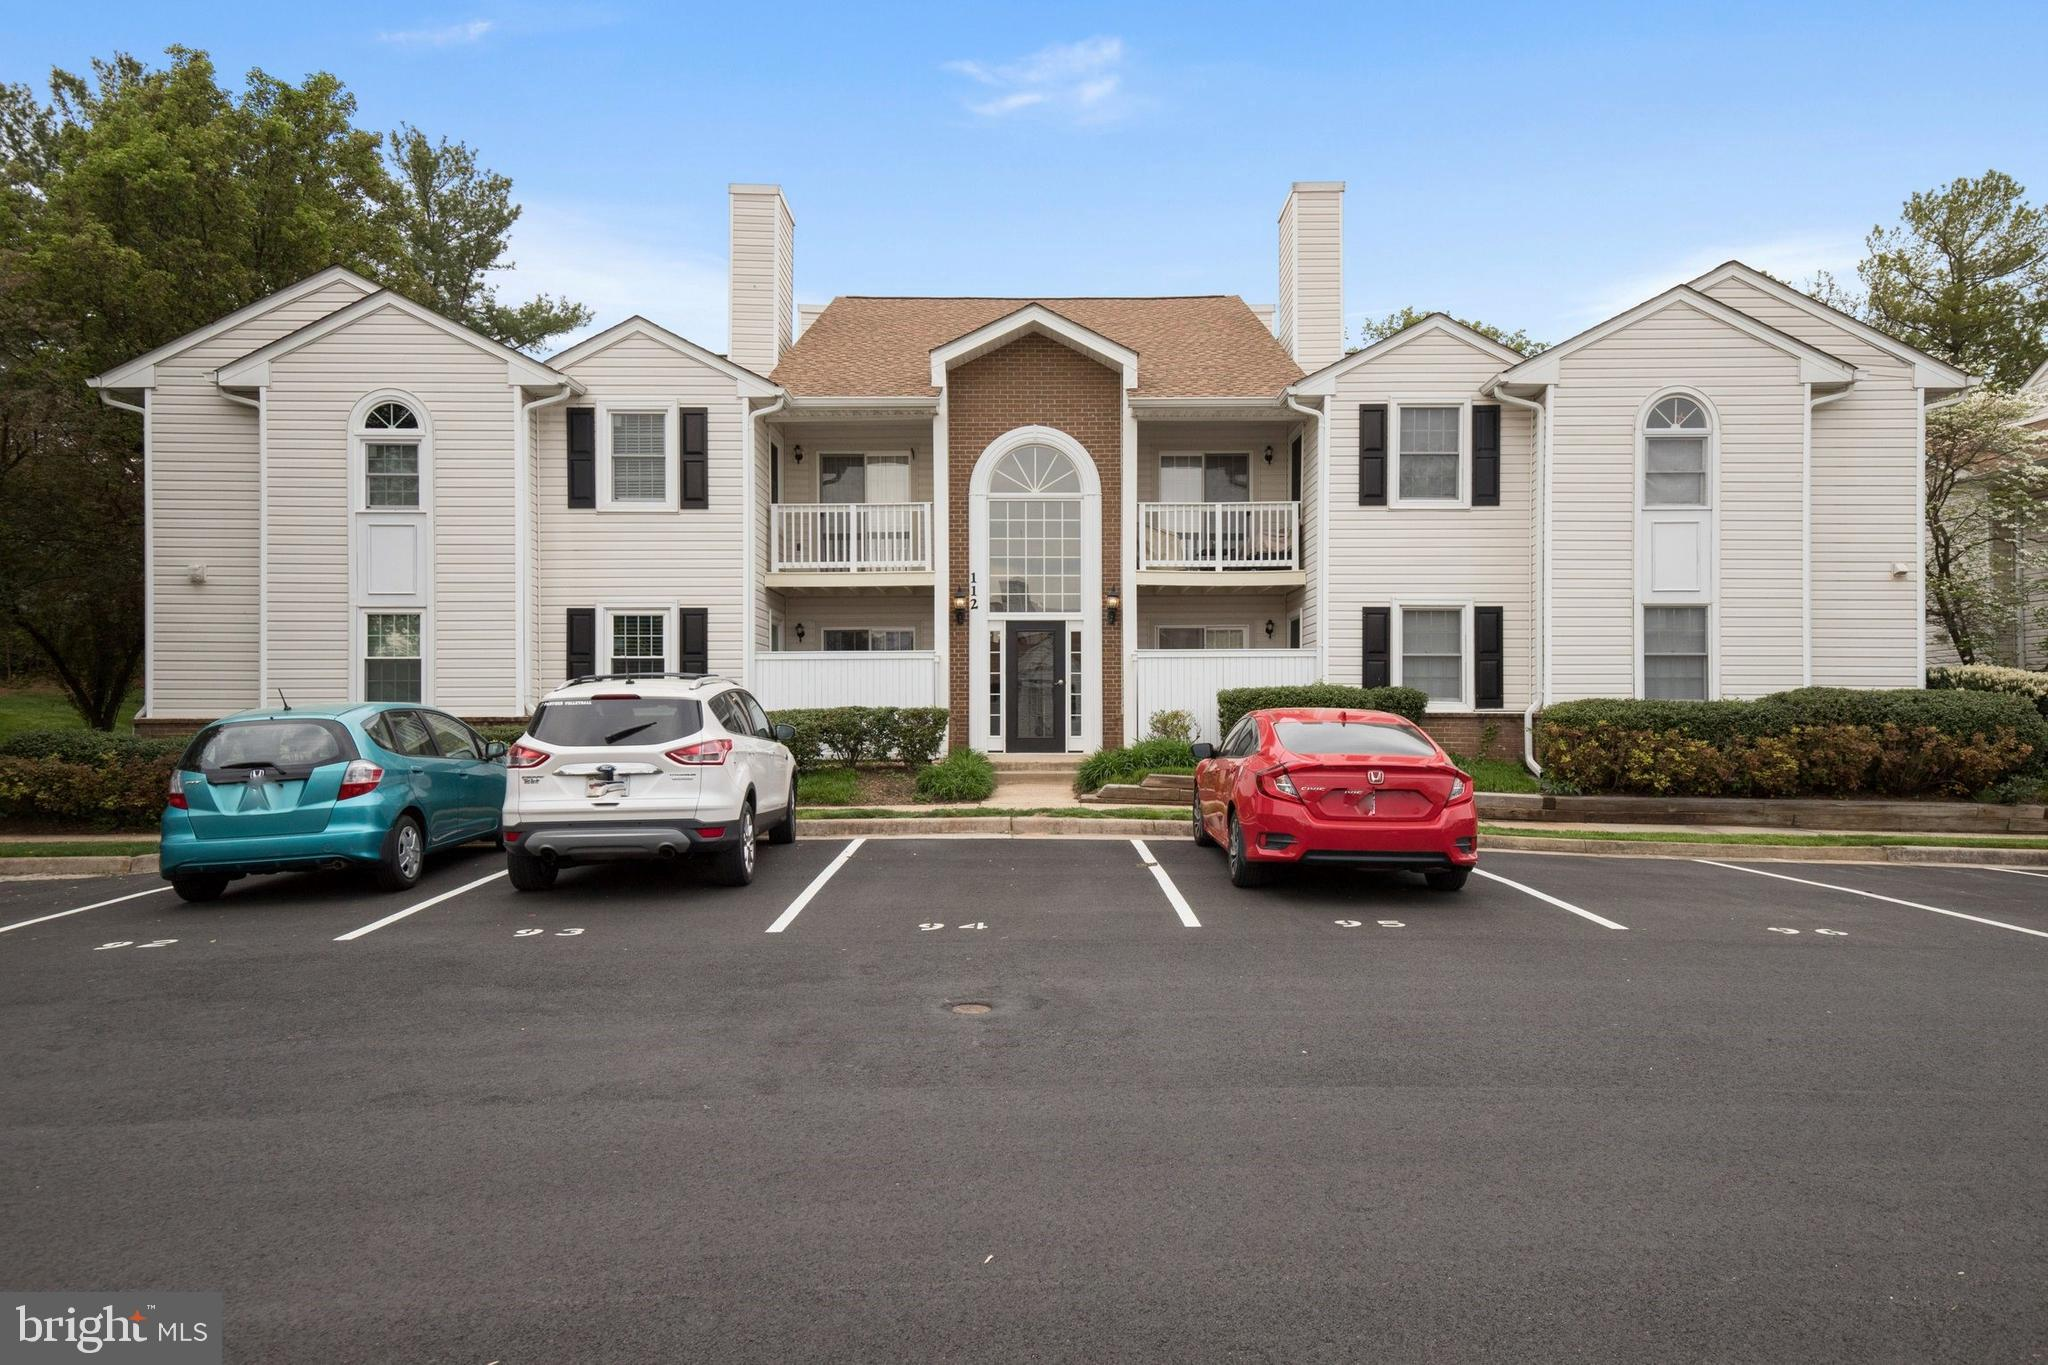 Completely remodeled and move-in ready upper level condo unit in Villas at Countryside! New carpet, new paint, remodeled kitchen, with all new appliances. New tile in foyer, kitchen and laundry room. Both bathrooms have been updated, the master bath has new granite countertops. New blinds on all windows. All new door handles, plugs and switches. Close to grocery store, restaurants, post office and shopping (Dulles Towne Center). Community pool membership available. Hurry, this one will not last!